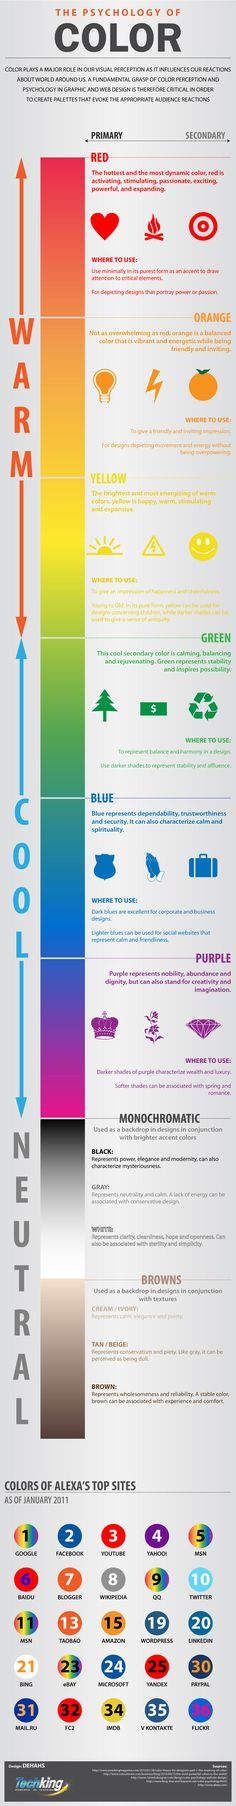 The psychology of color.   Tell us in comments here what YOUR LOGO tells people: